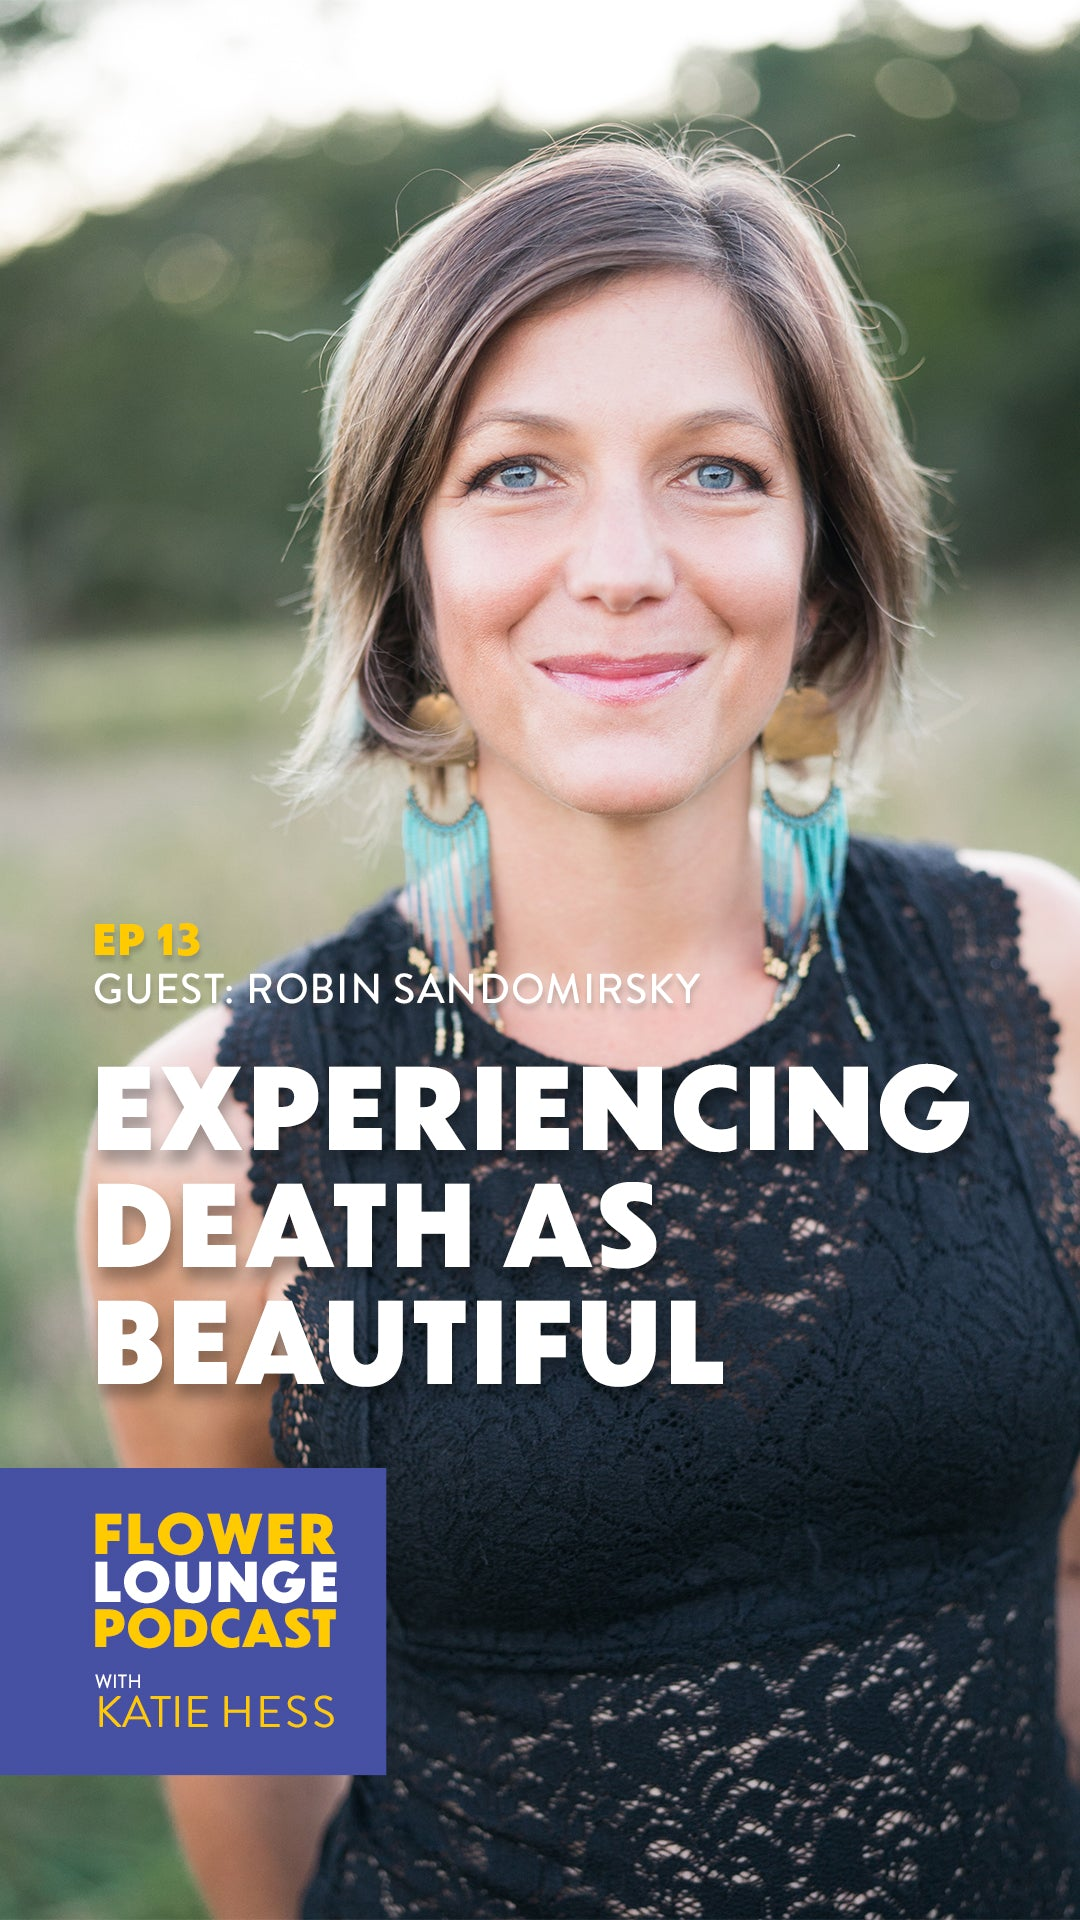 Experiencing Death as Beautiful with Robin Sandomirsky on the Flowerlounge Podcast with Katie Hess